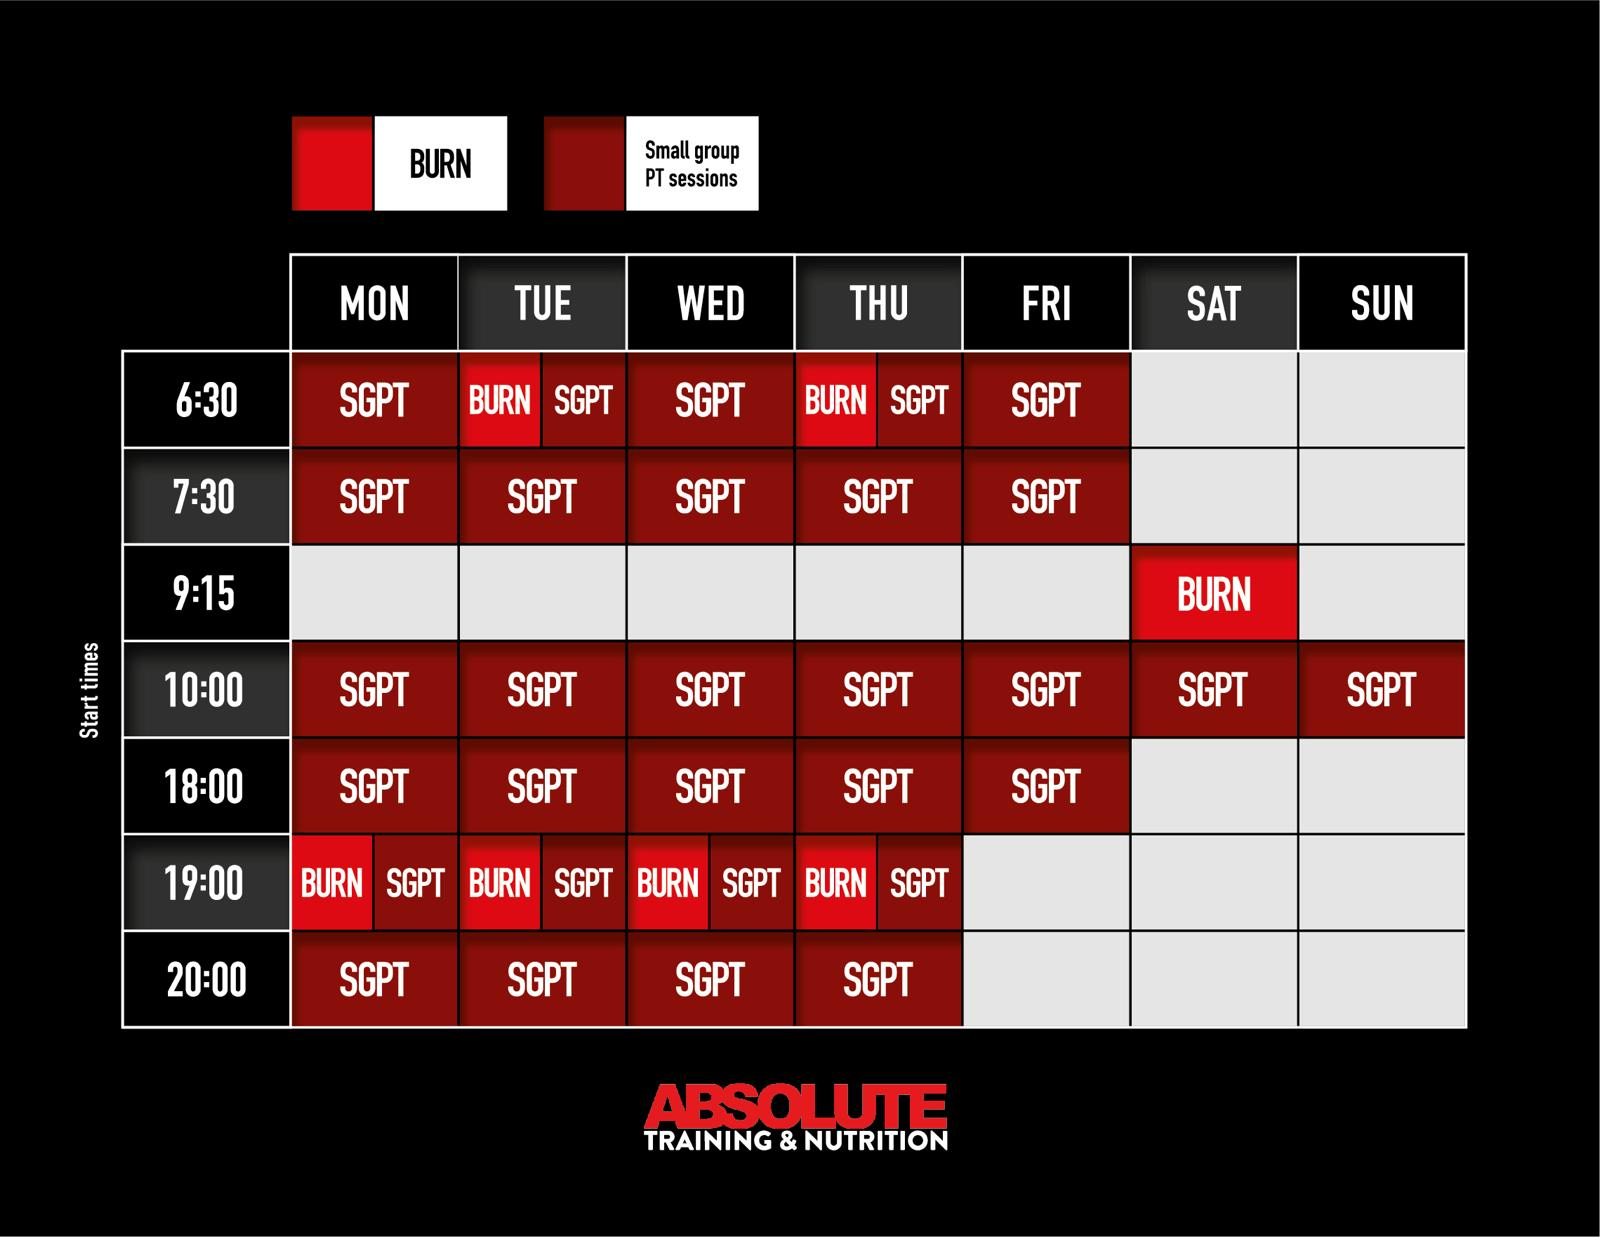 Small Group Personal Training Timetable for Absolute Training & Nutrition